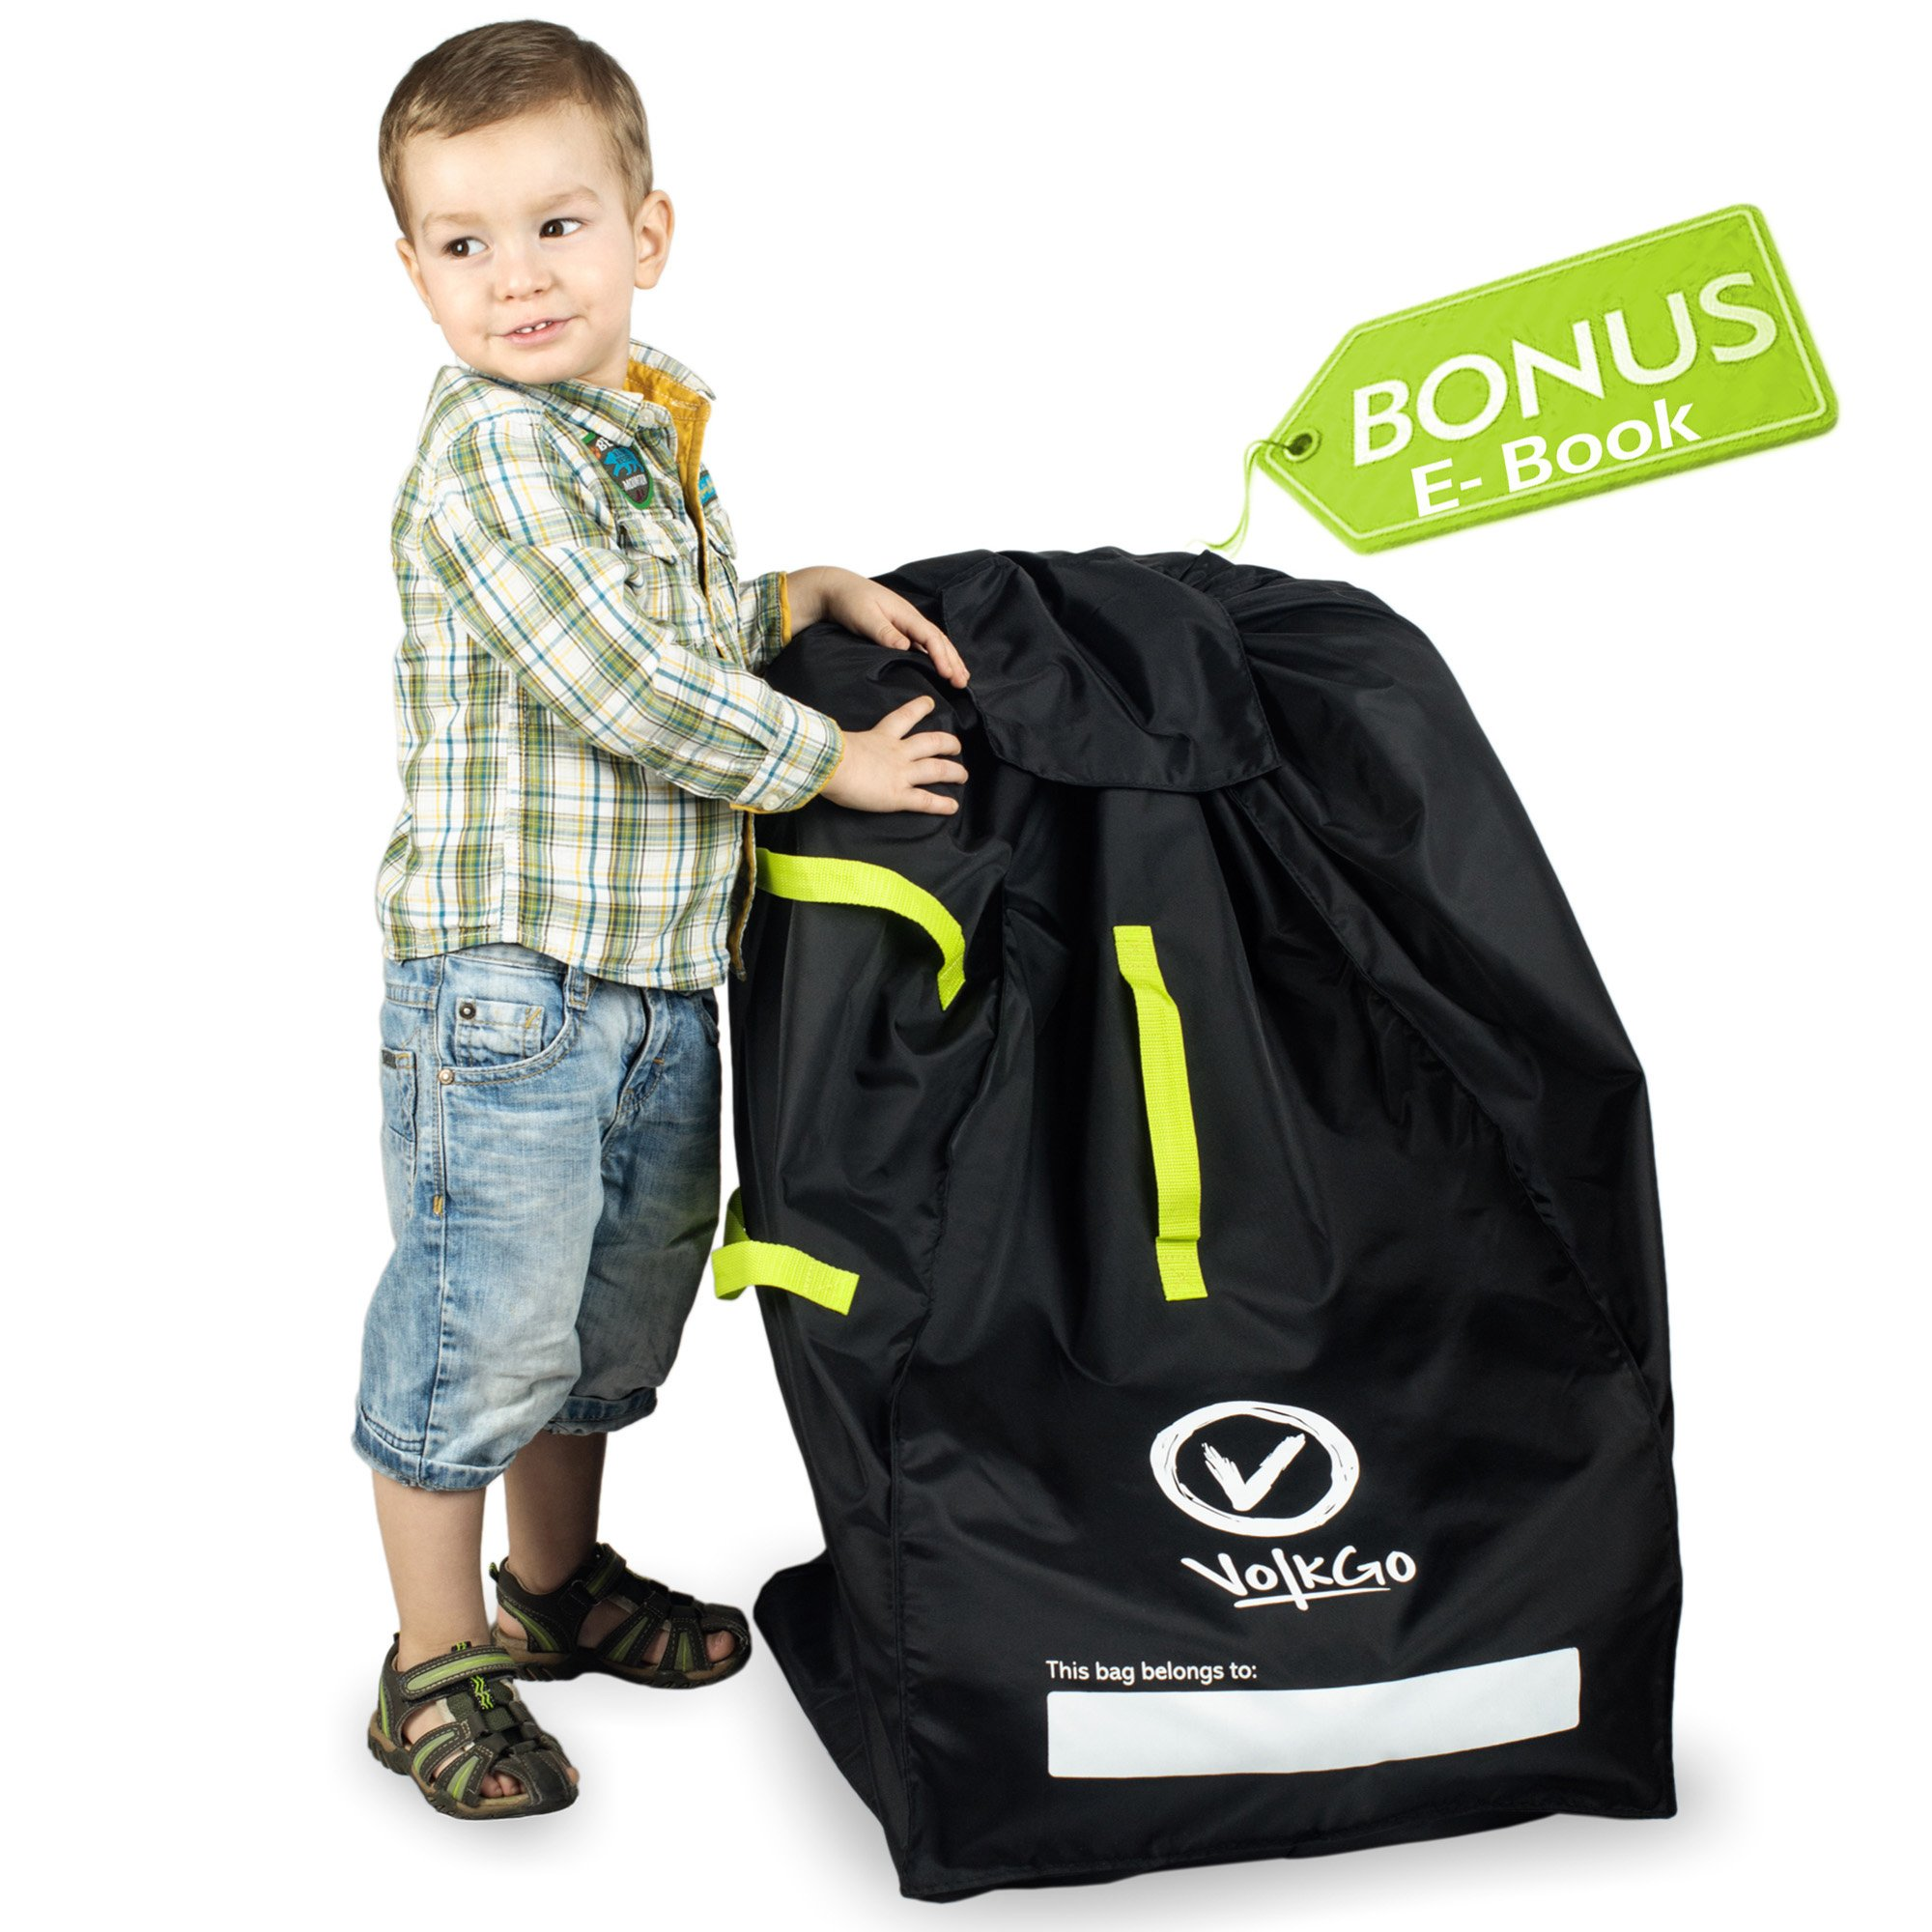 Volkgo Durable Car Seat Travel Bag, Gate Check Bag by V VOLKGO